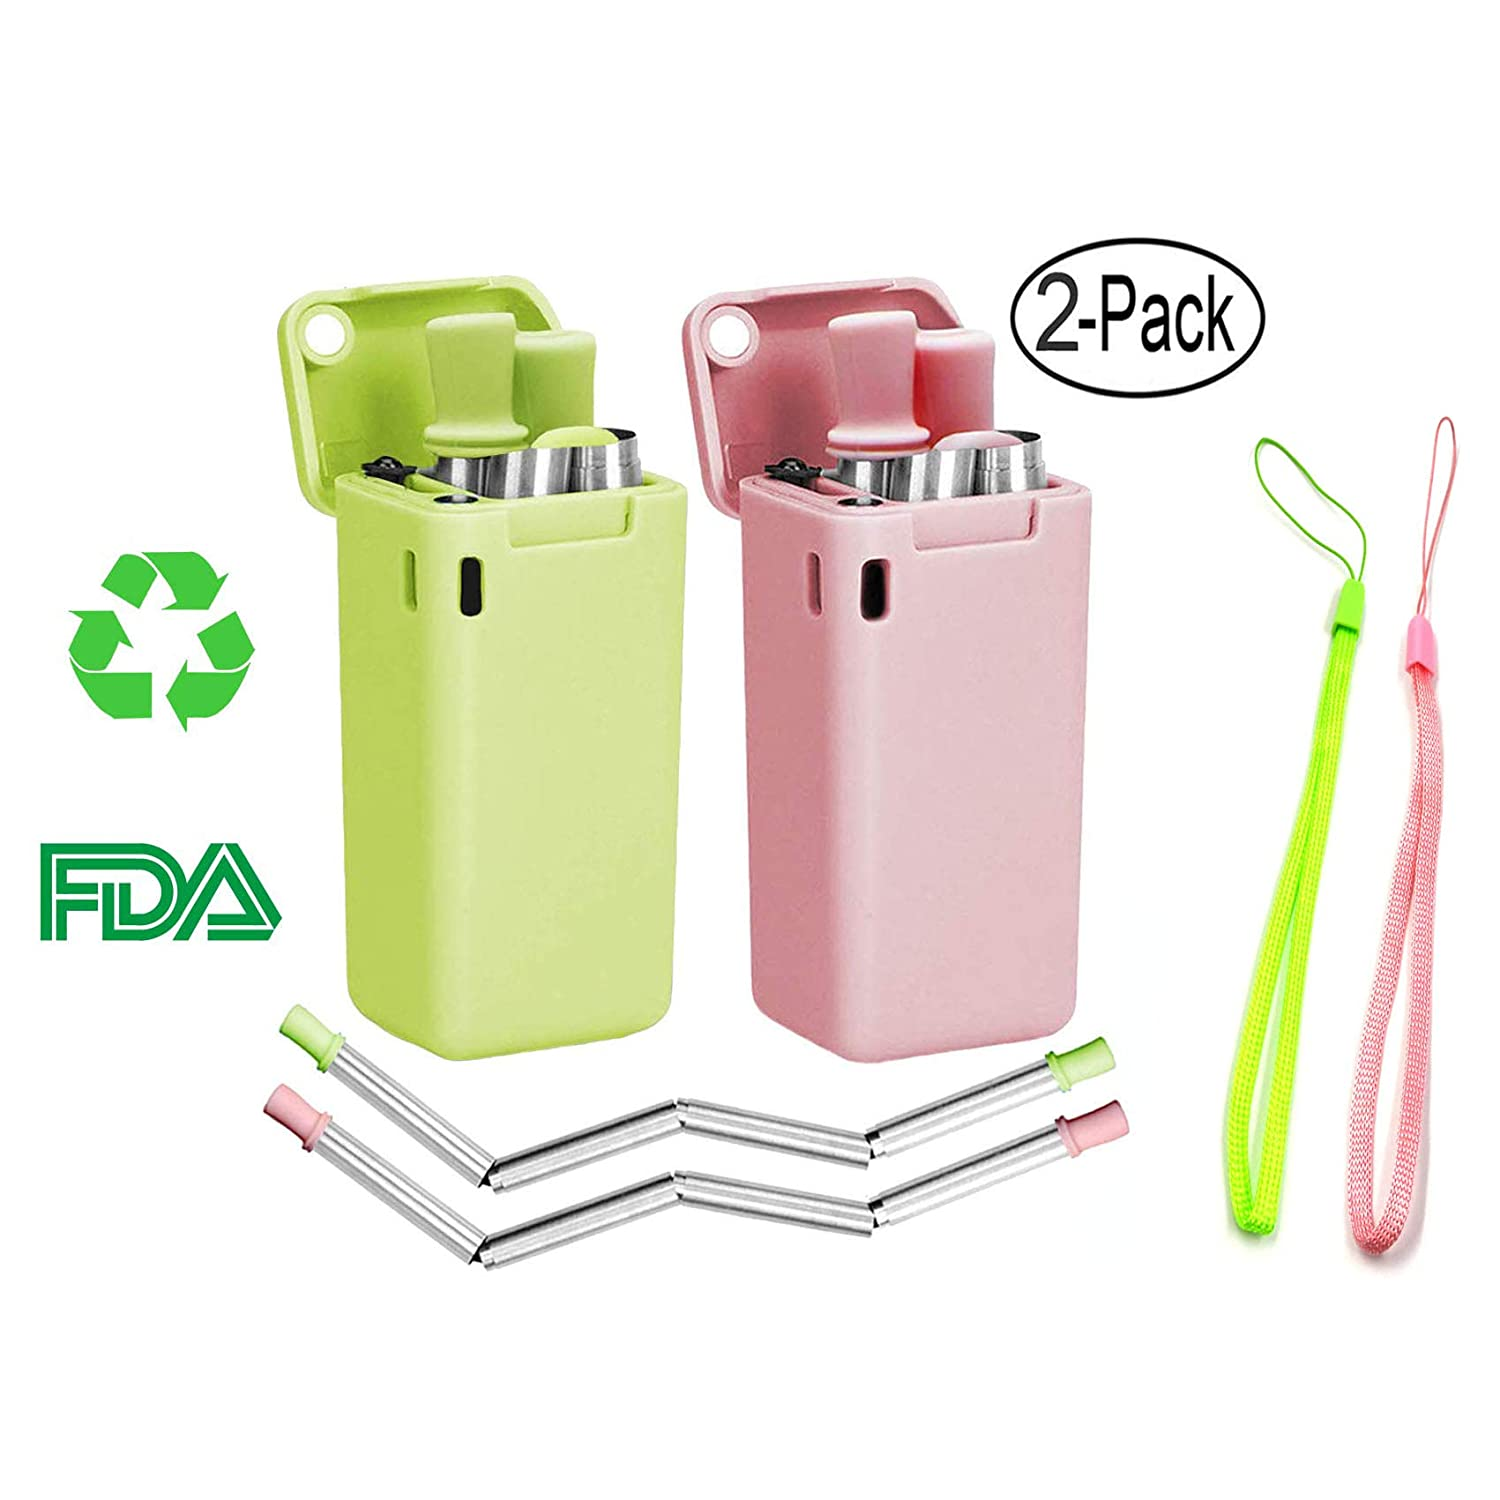 Composed of Stainless Steel and Food-grade Silicone Pink/&green Portable Set with Hard Case Holder and Cleaning Brush 2 Pack Collapsible Reusable Straw Duttek